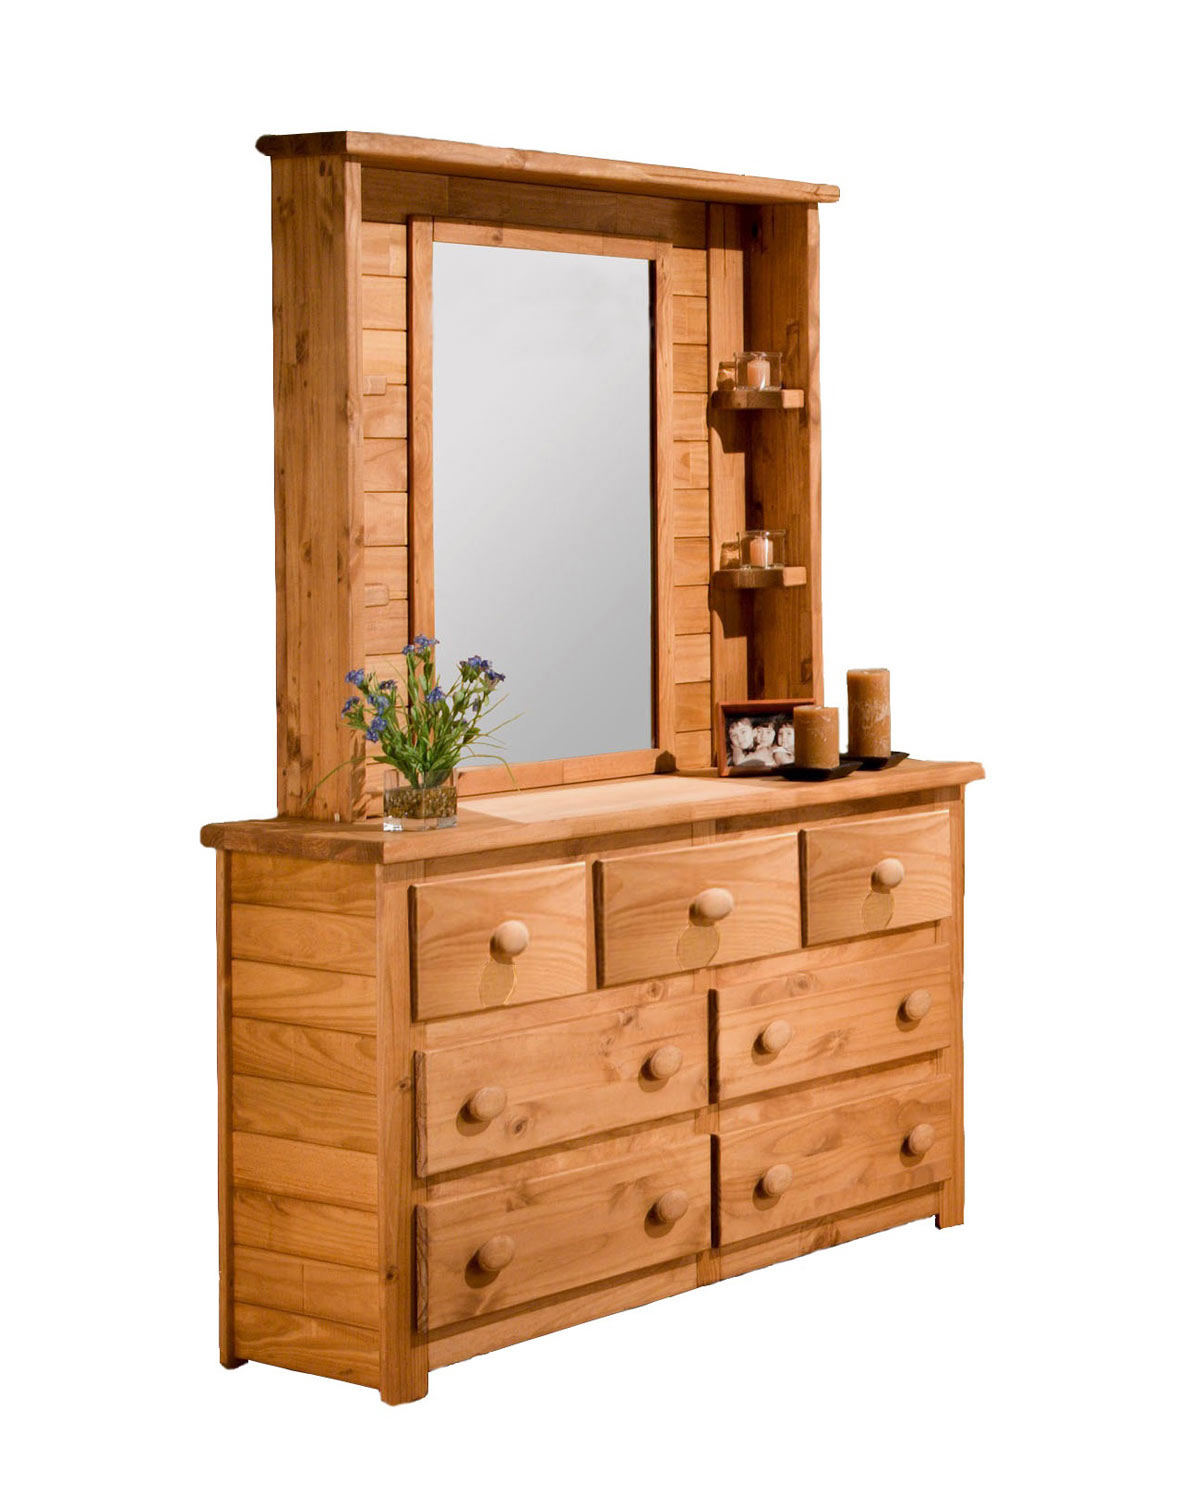 Chelsea Home 31007-104 7 Drawer Dresser with Mirror Hutch - Ginger Stain